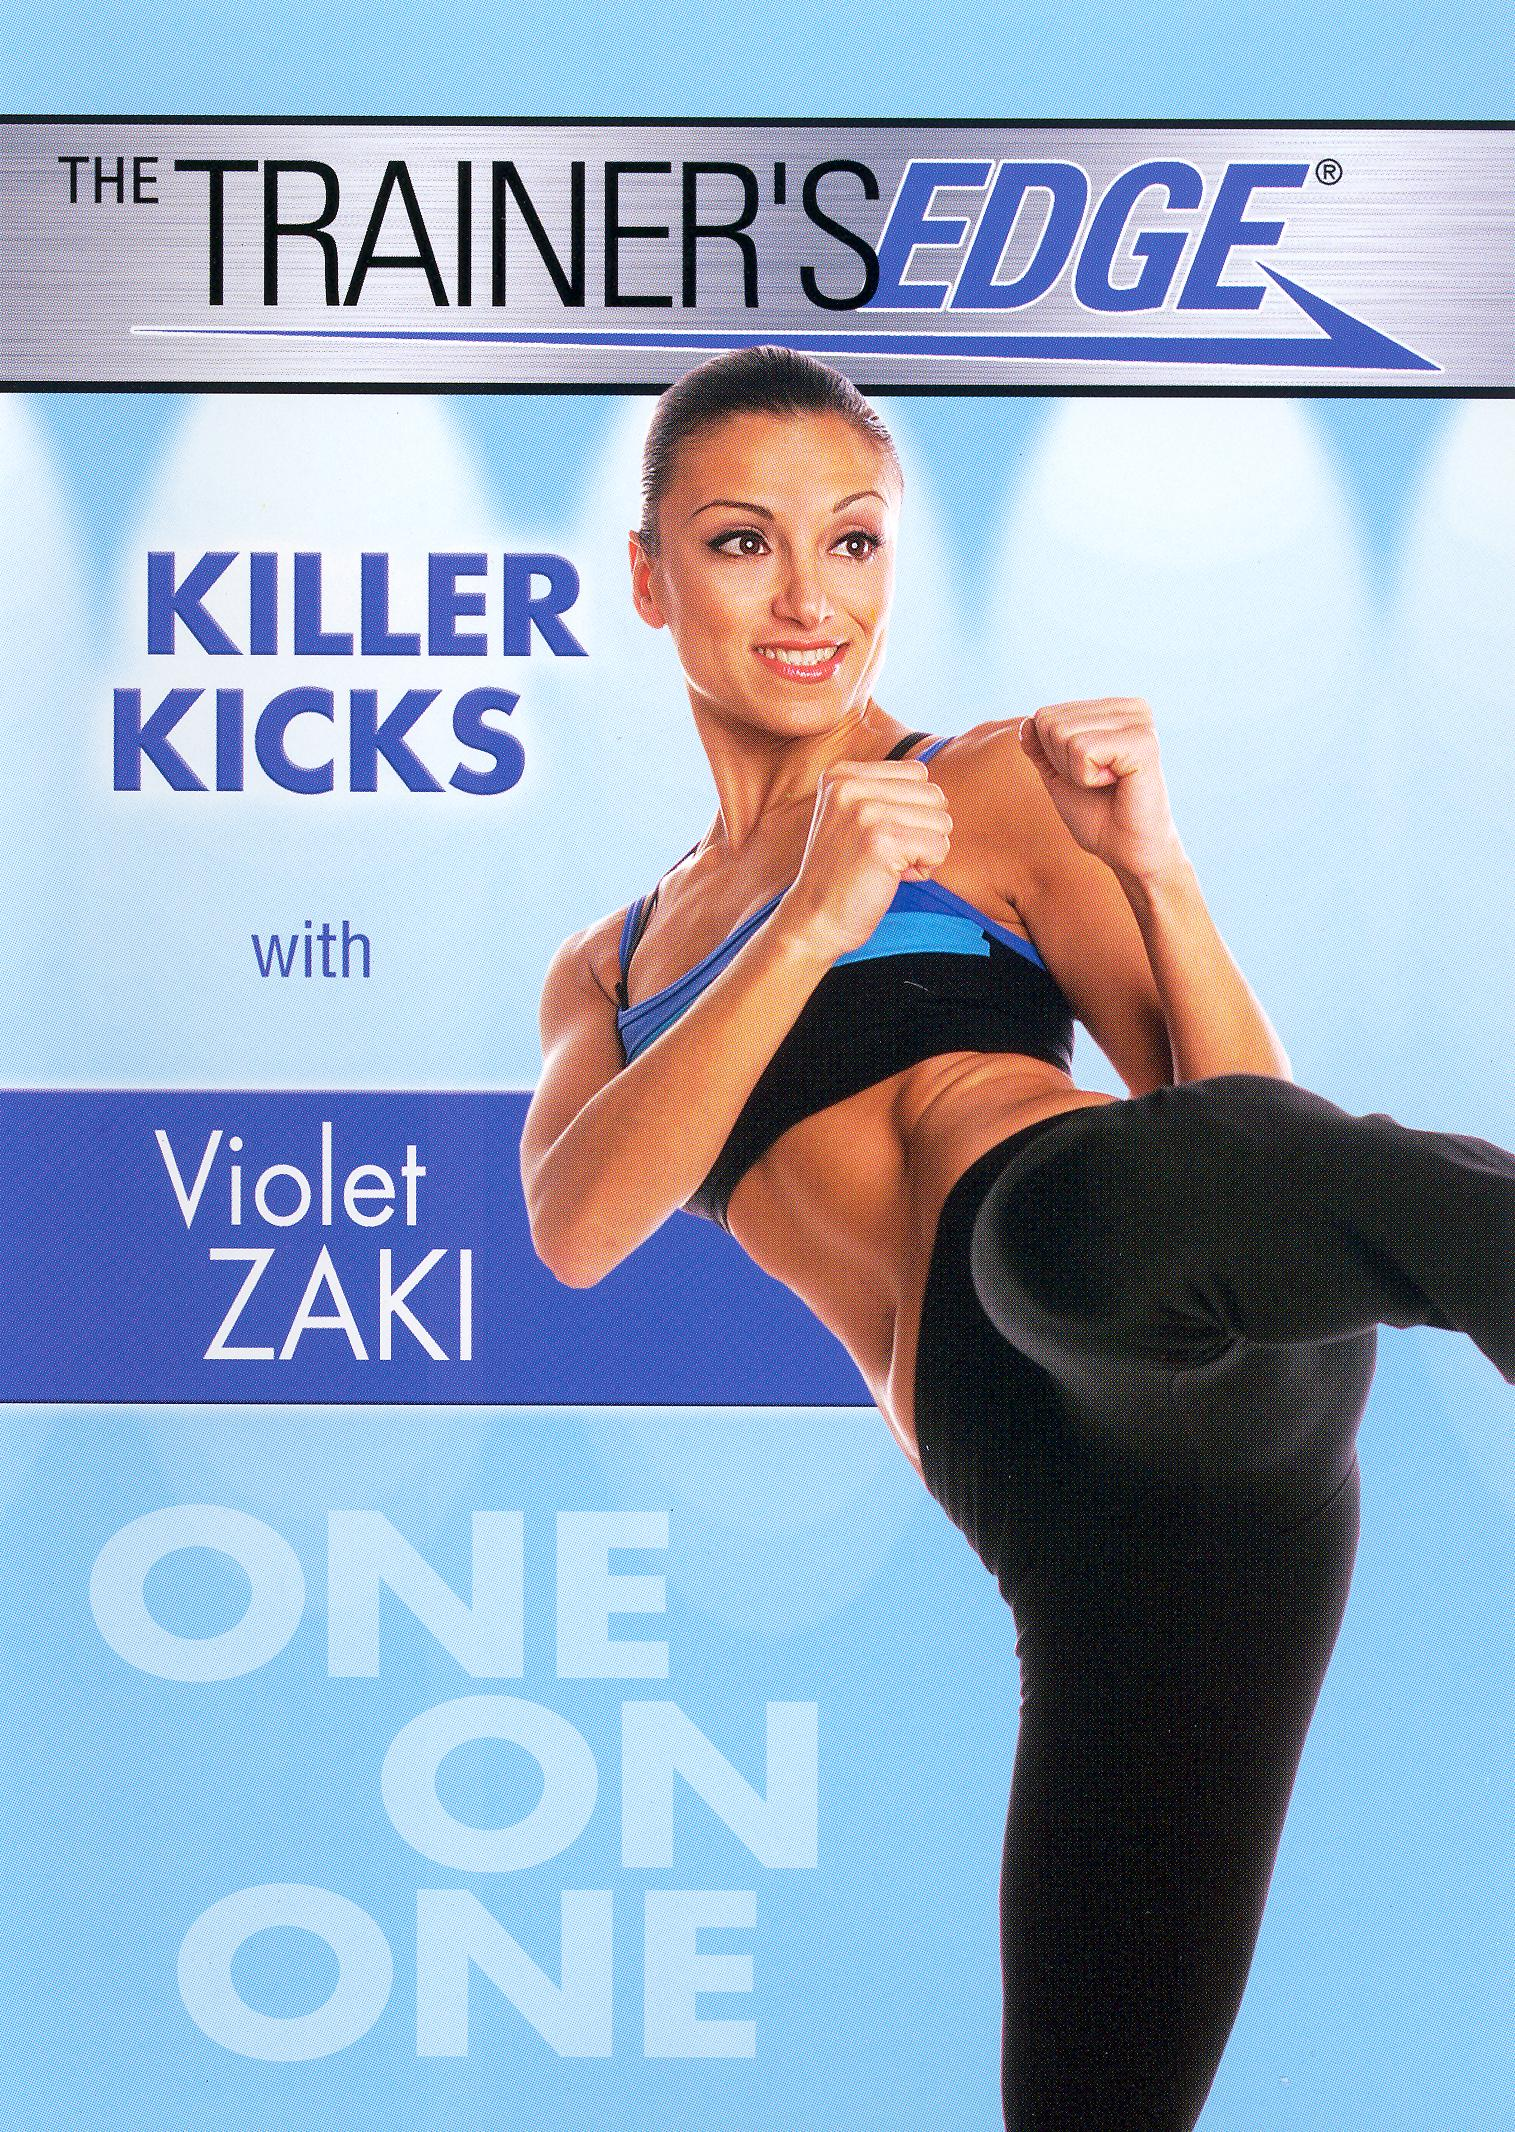 The Trainer's Edge: Killer Kicks with Violet Zaki